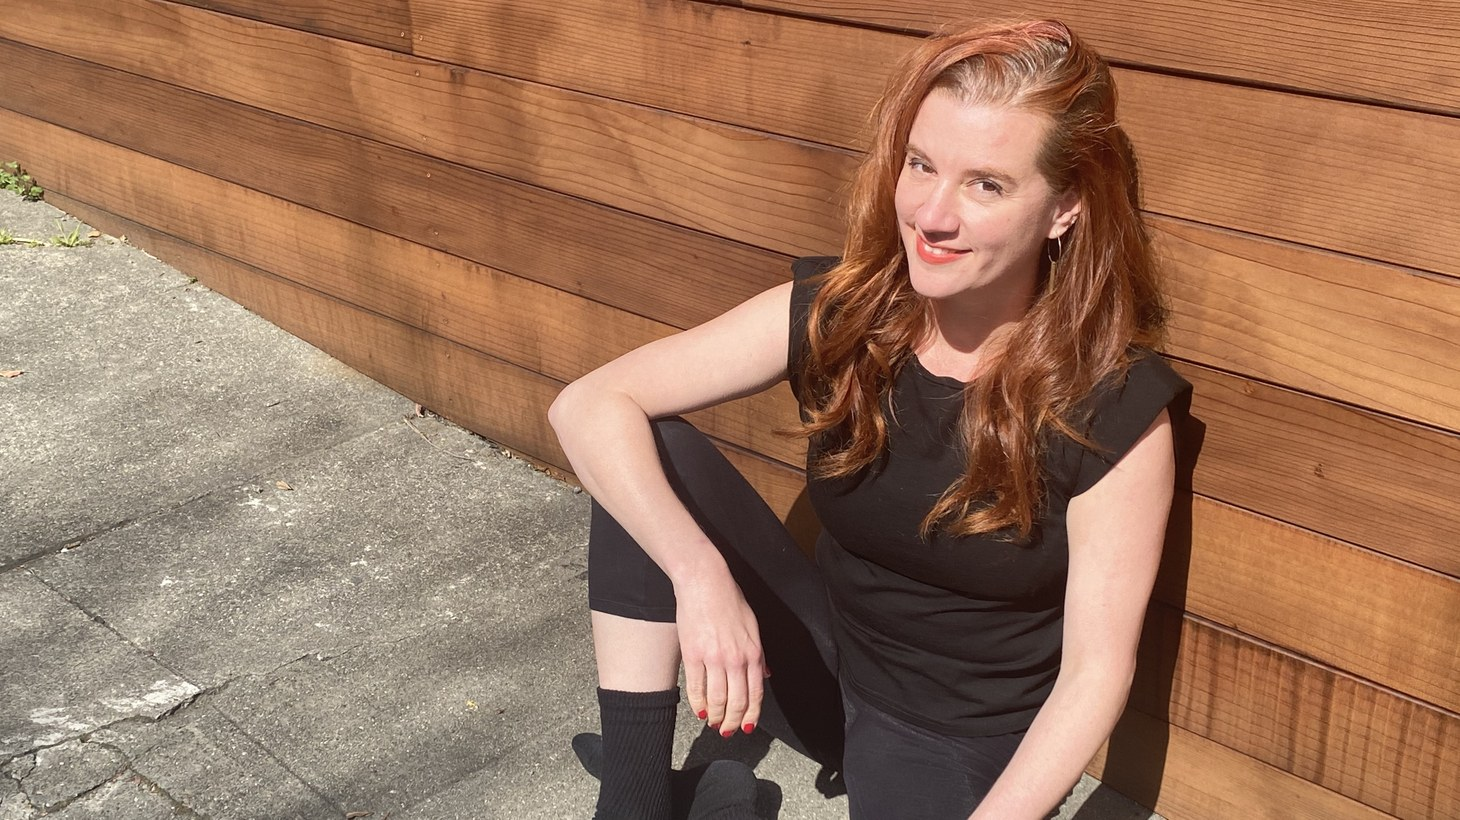 Jenni Bregman owns a restaurant in Oakland, but her other passion is dancing.